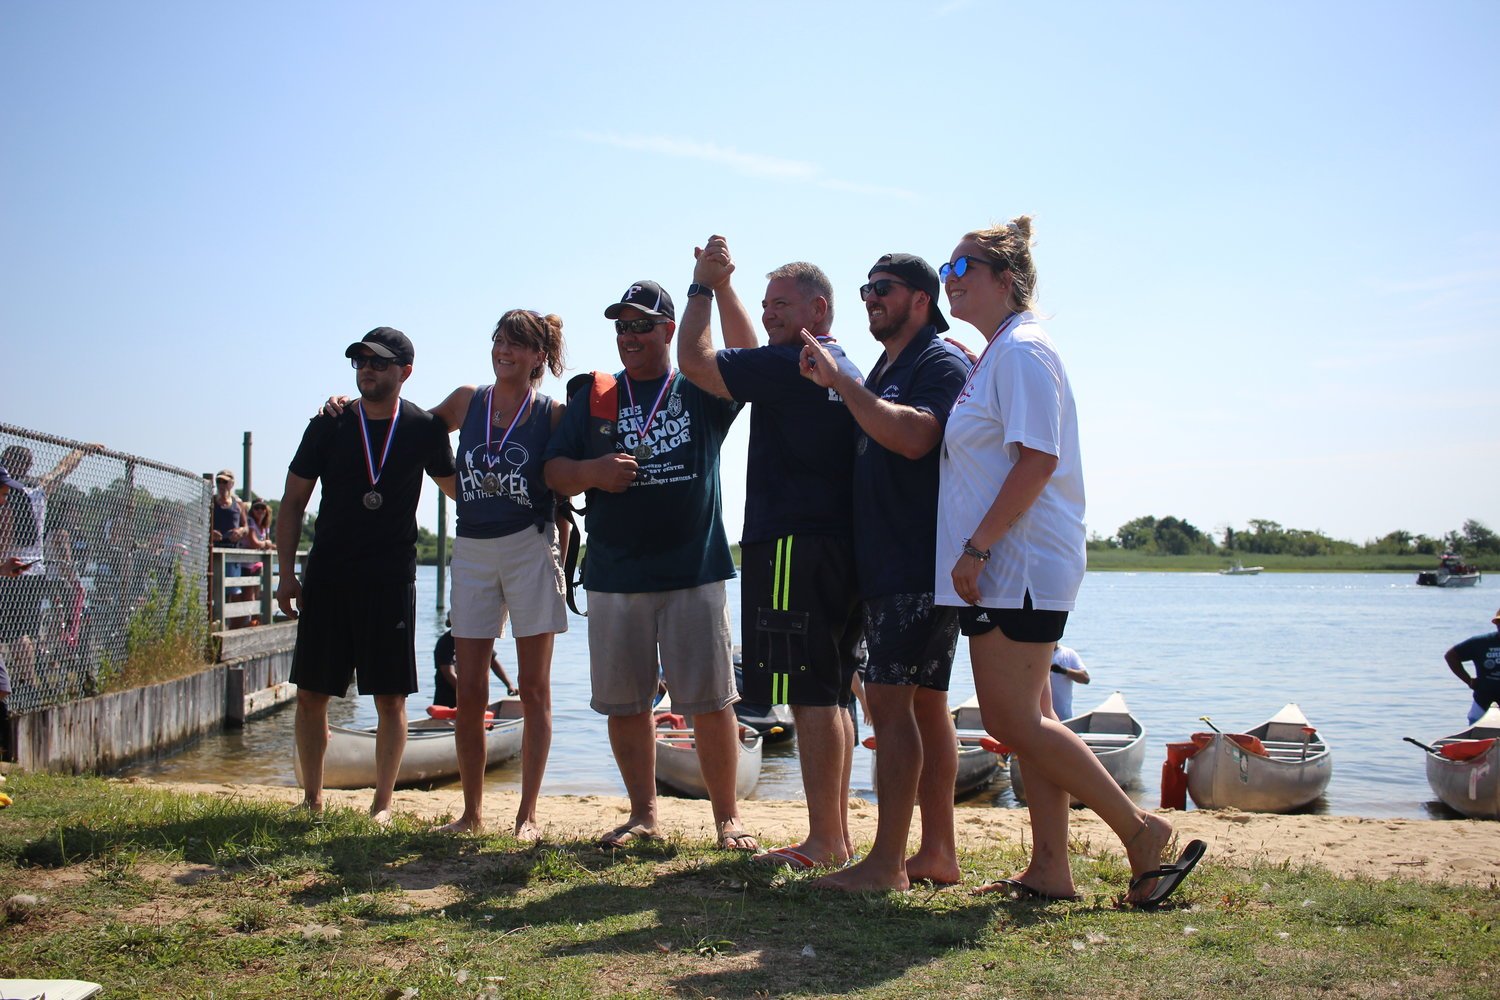 Freeport Mayor Robert Kennedy, third from left, and Legislator Steve Rhoads, third from right, win first place in one of the races at the annual Great Canoe Race in Cow Meadow Park.